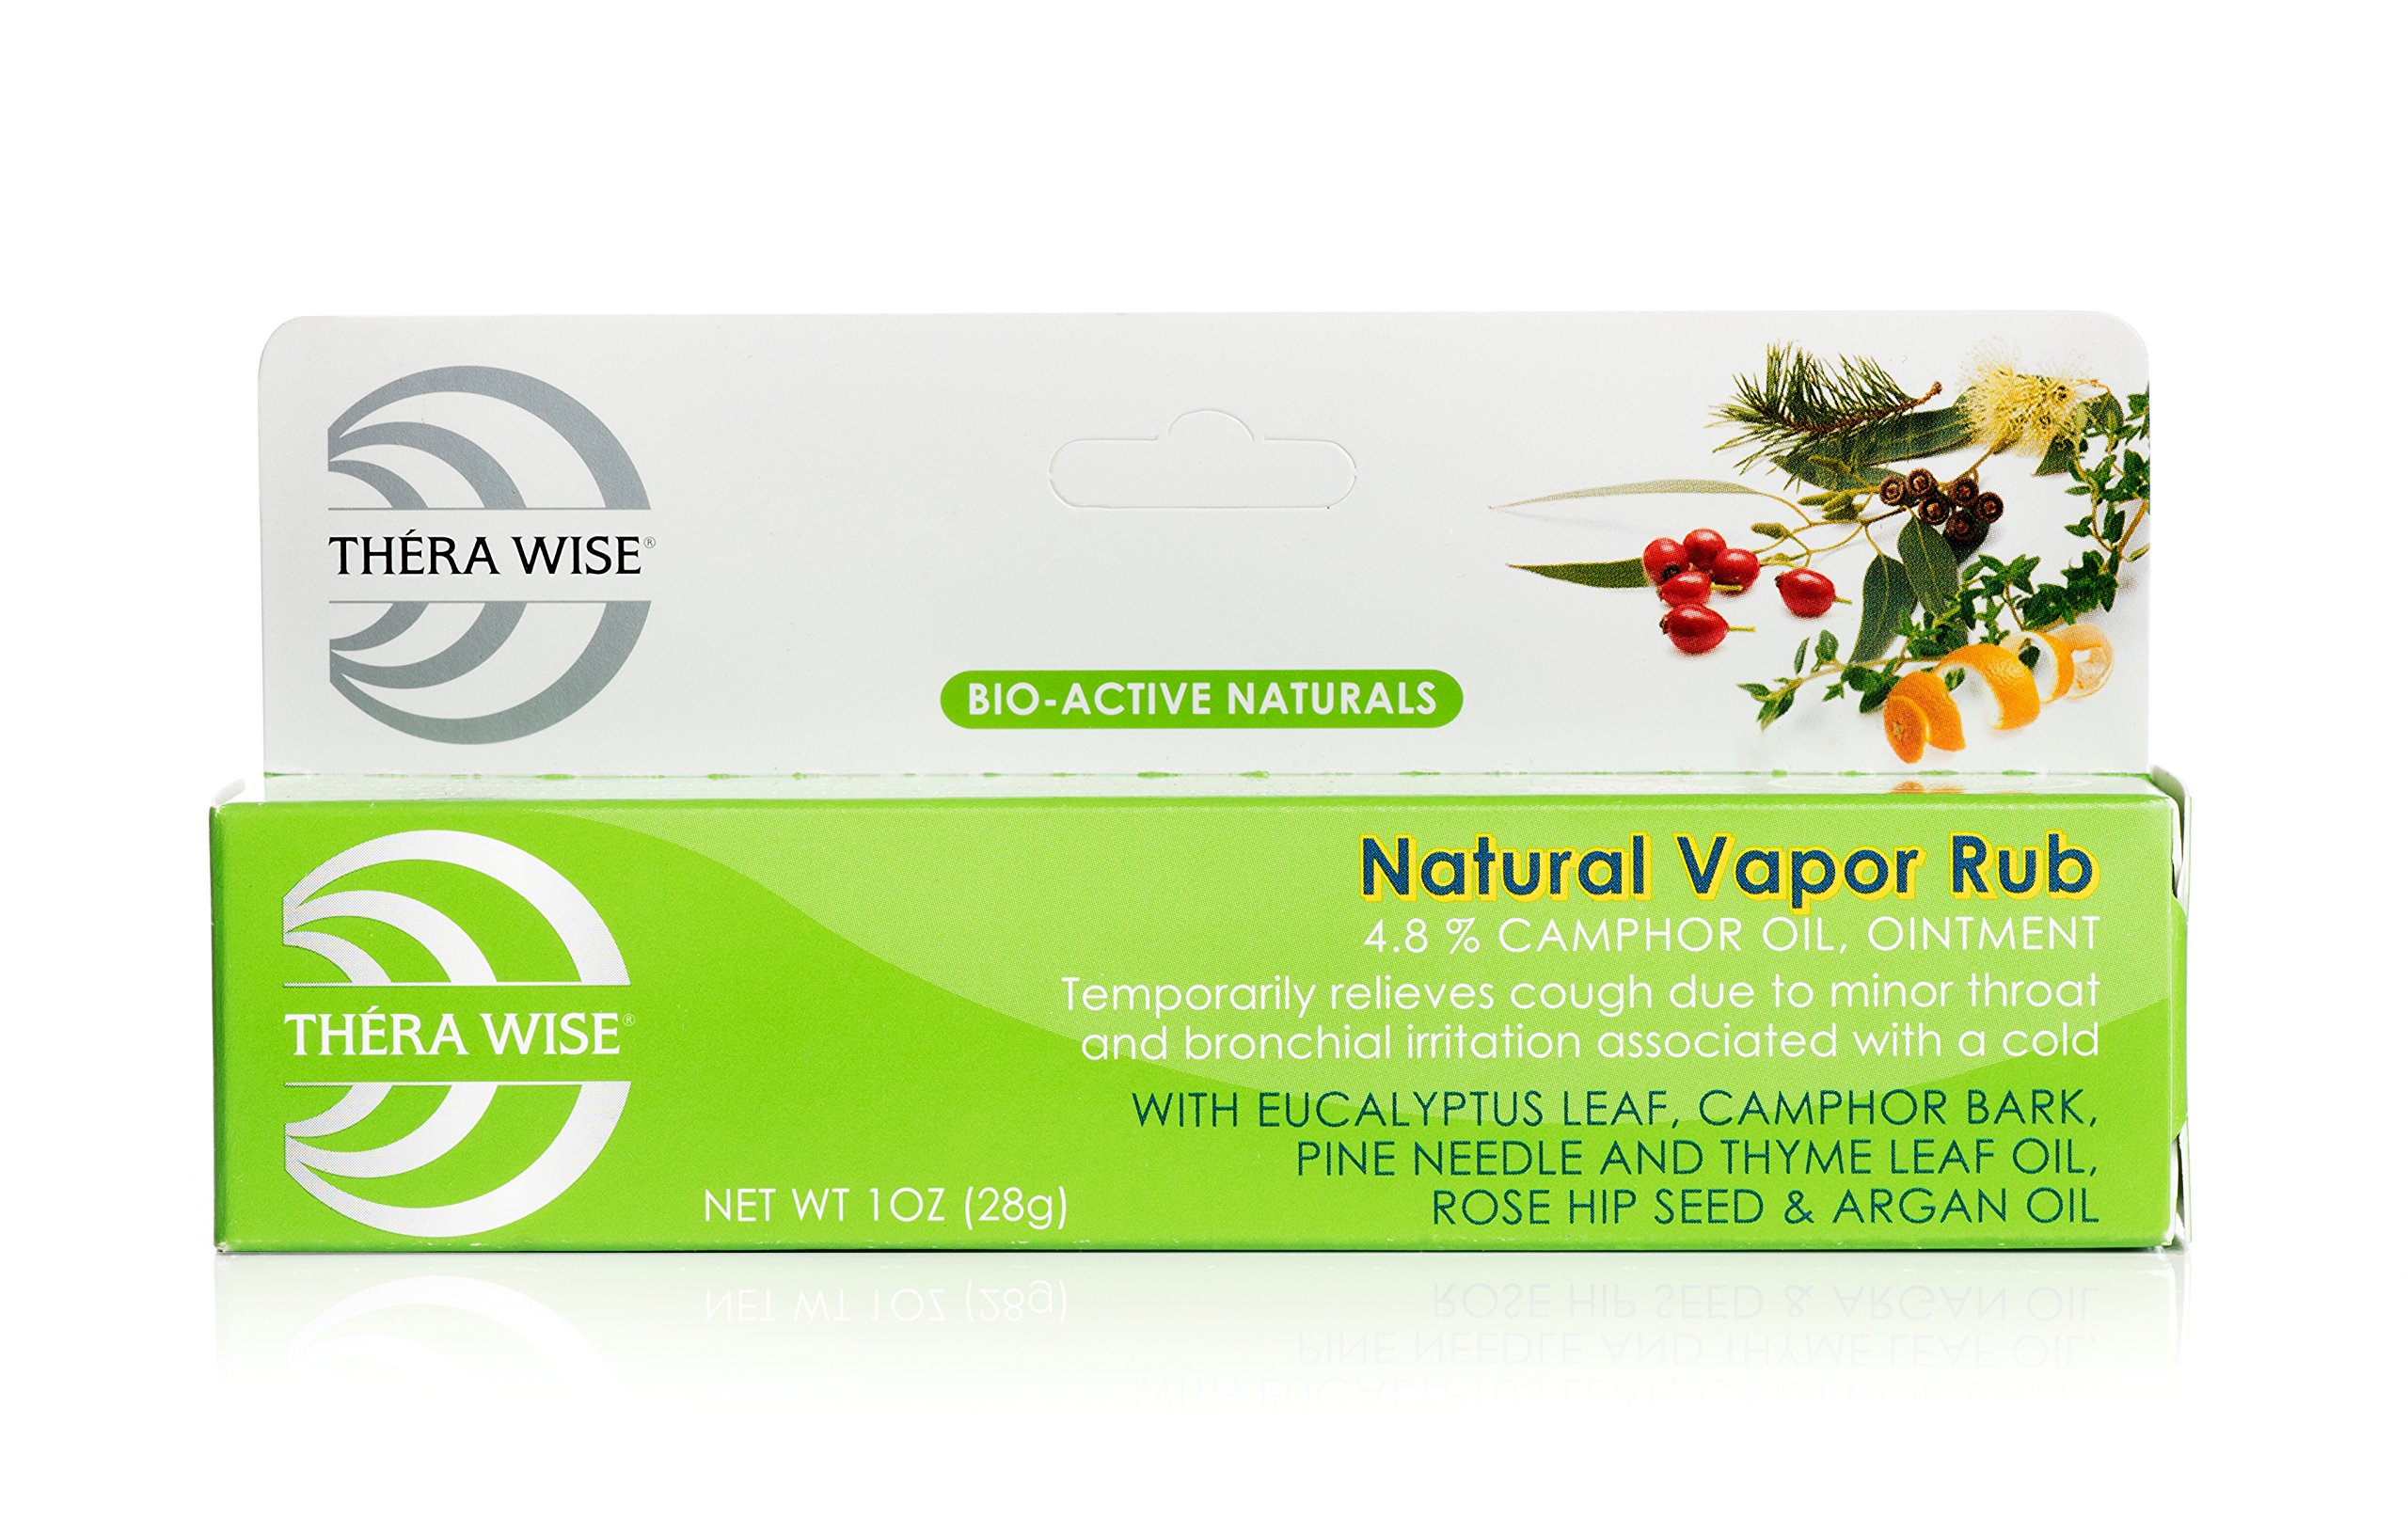 Thera Wise Natural Vapor Rub, The perfect natural alternative for colds, coughs and allergies